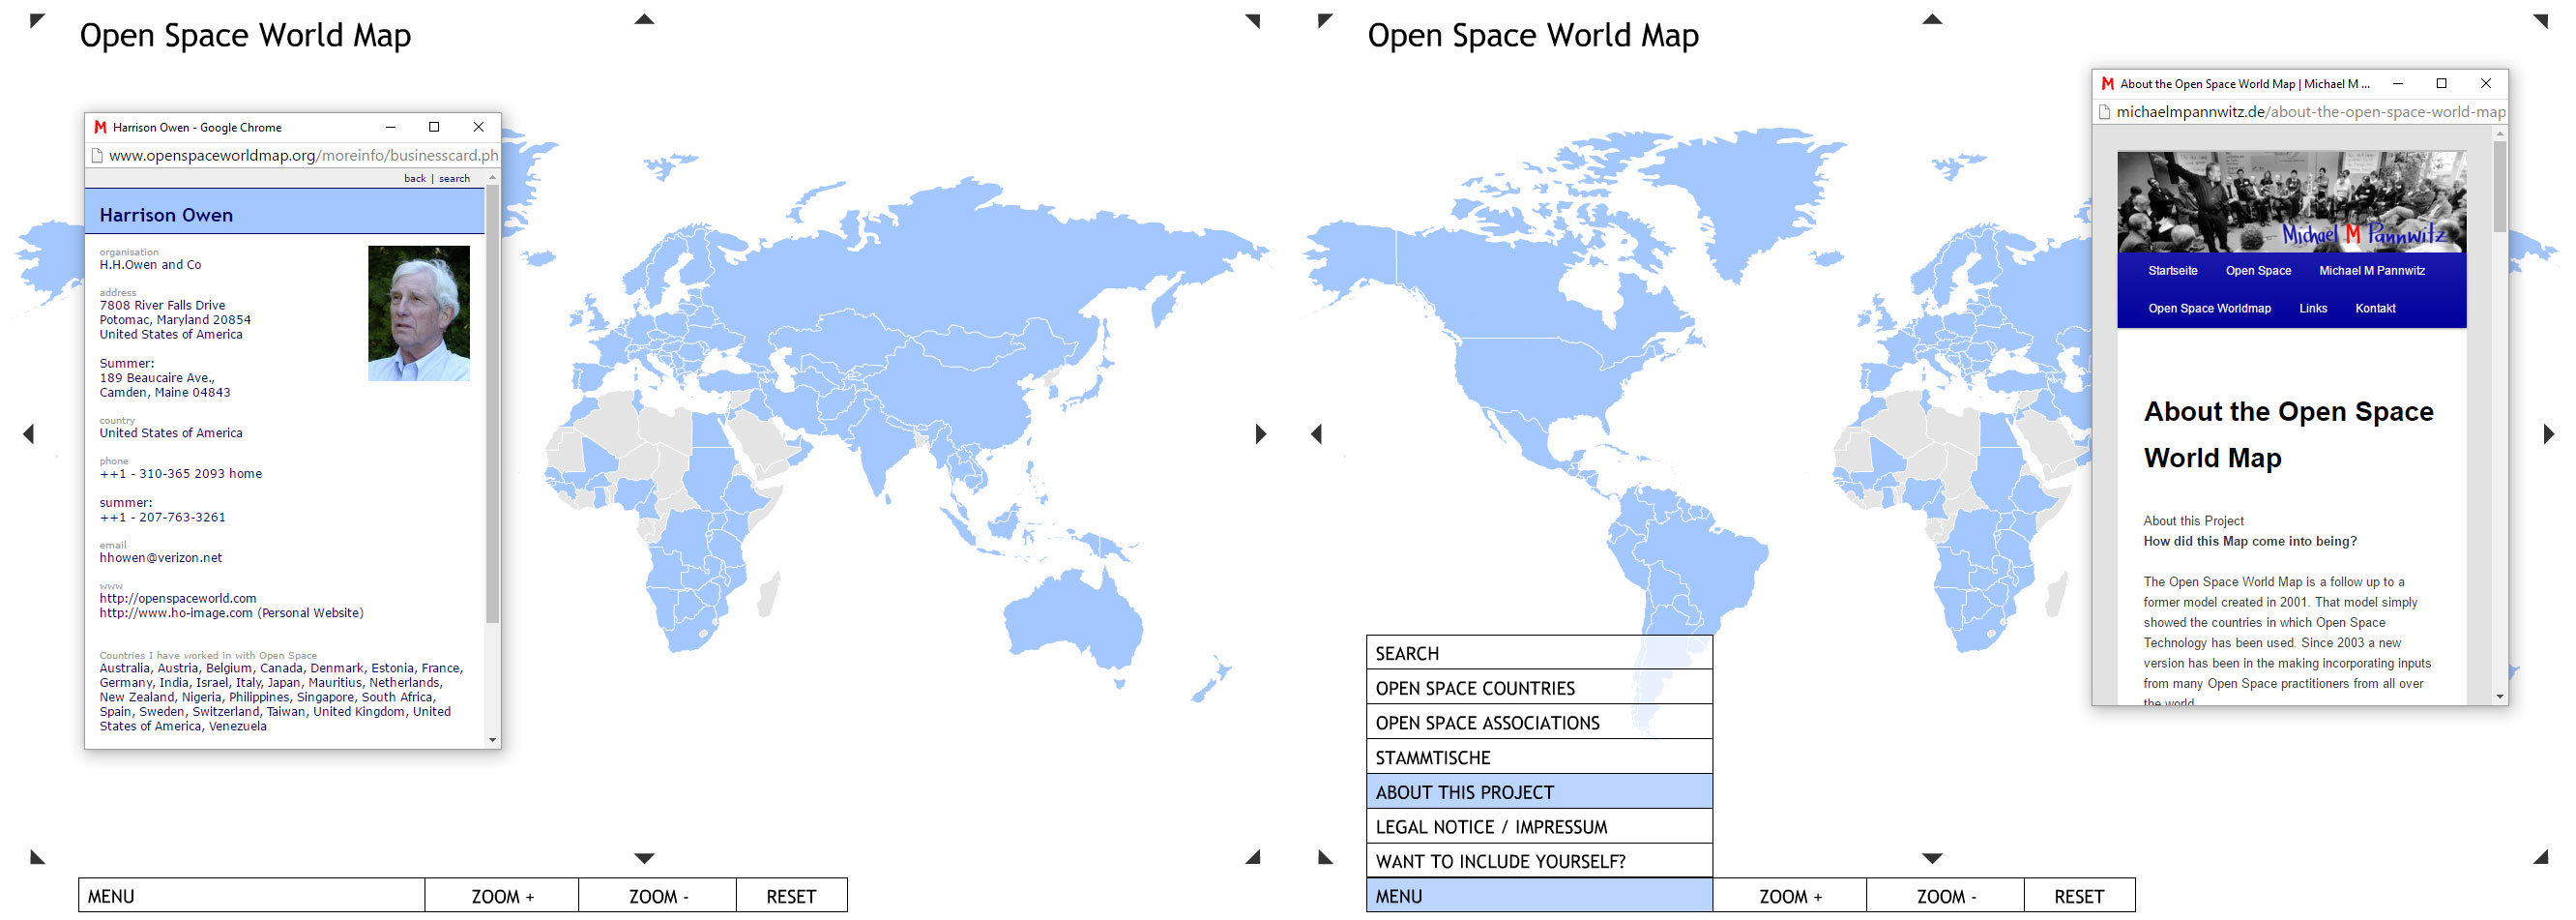 About the world map in 2015 the map comprised more than 400 open space workers in over 140 countries in addition to their contact details links to more than 200 web sites gumiabroncs